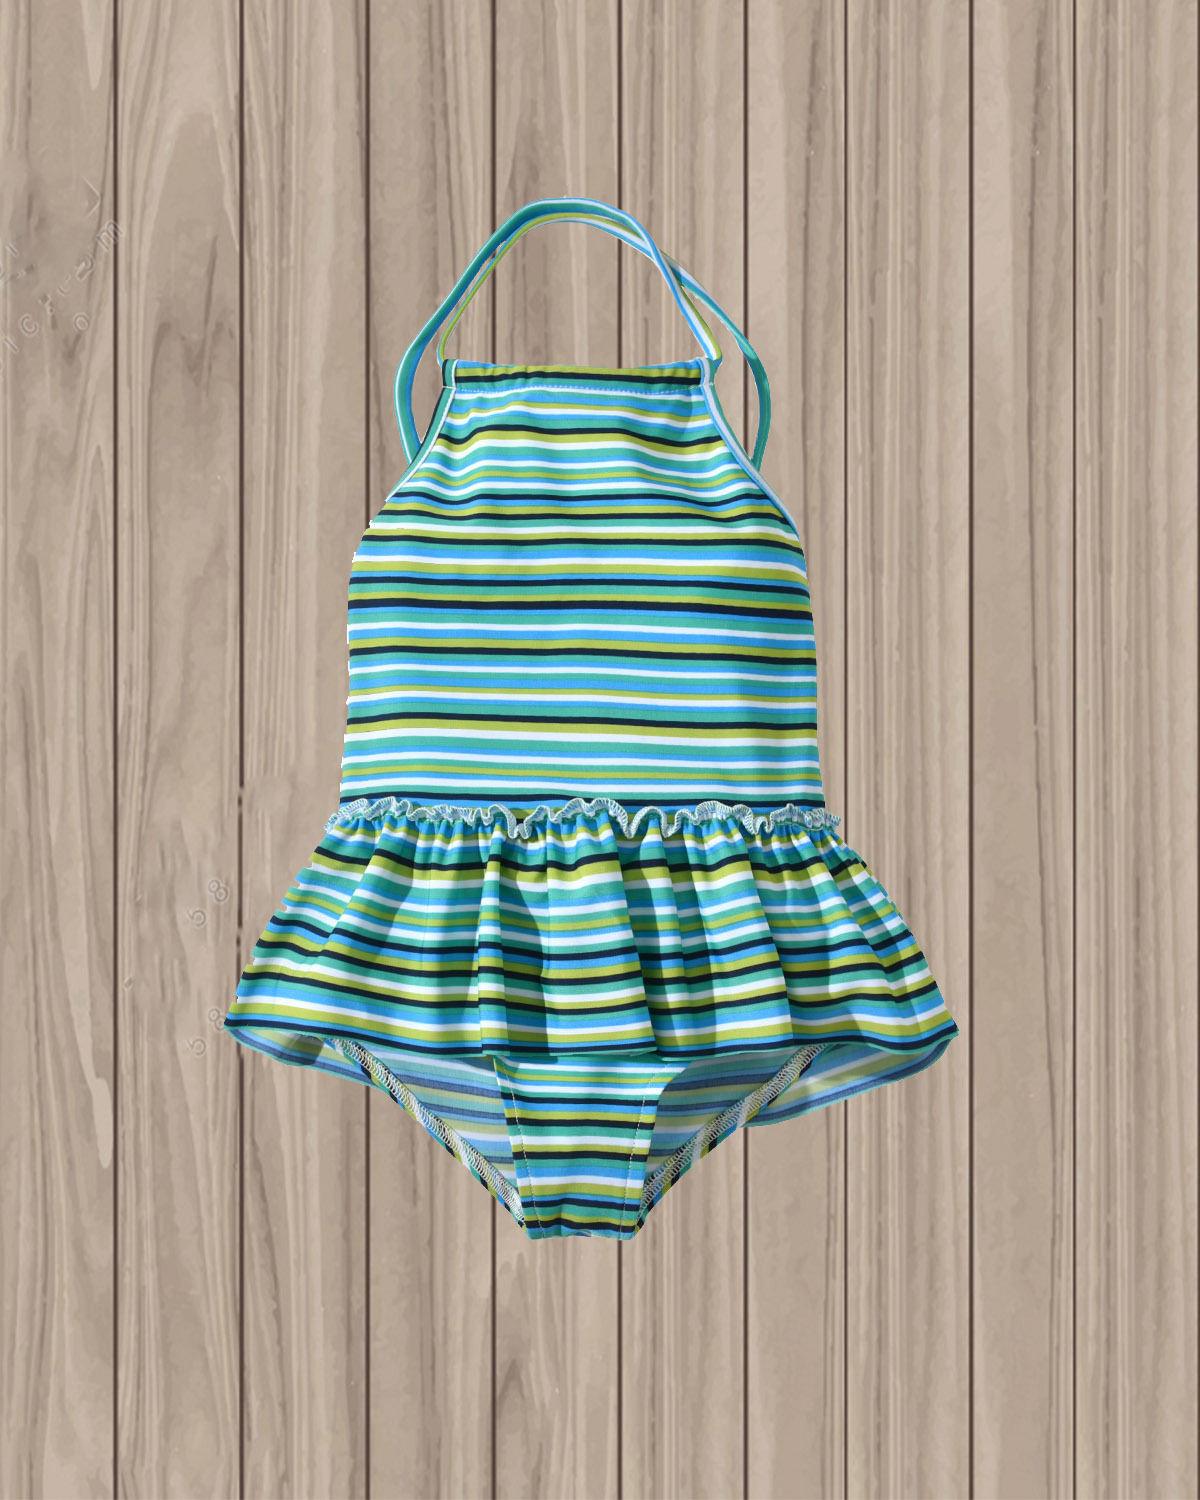 19 Years New Style KID'S Swimwear Girls Stripes Printed Small Group Tour Bathing Suit GIRL'S Off-Shoulder Halter One-piece Swimw